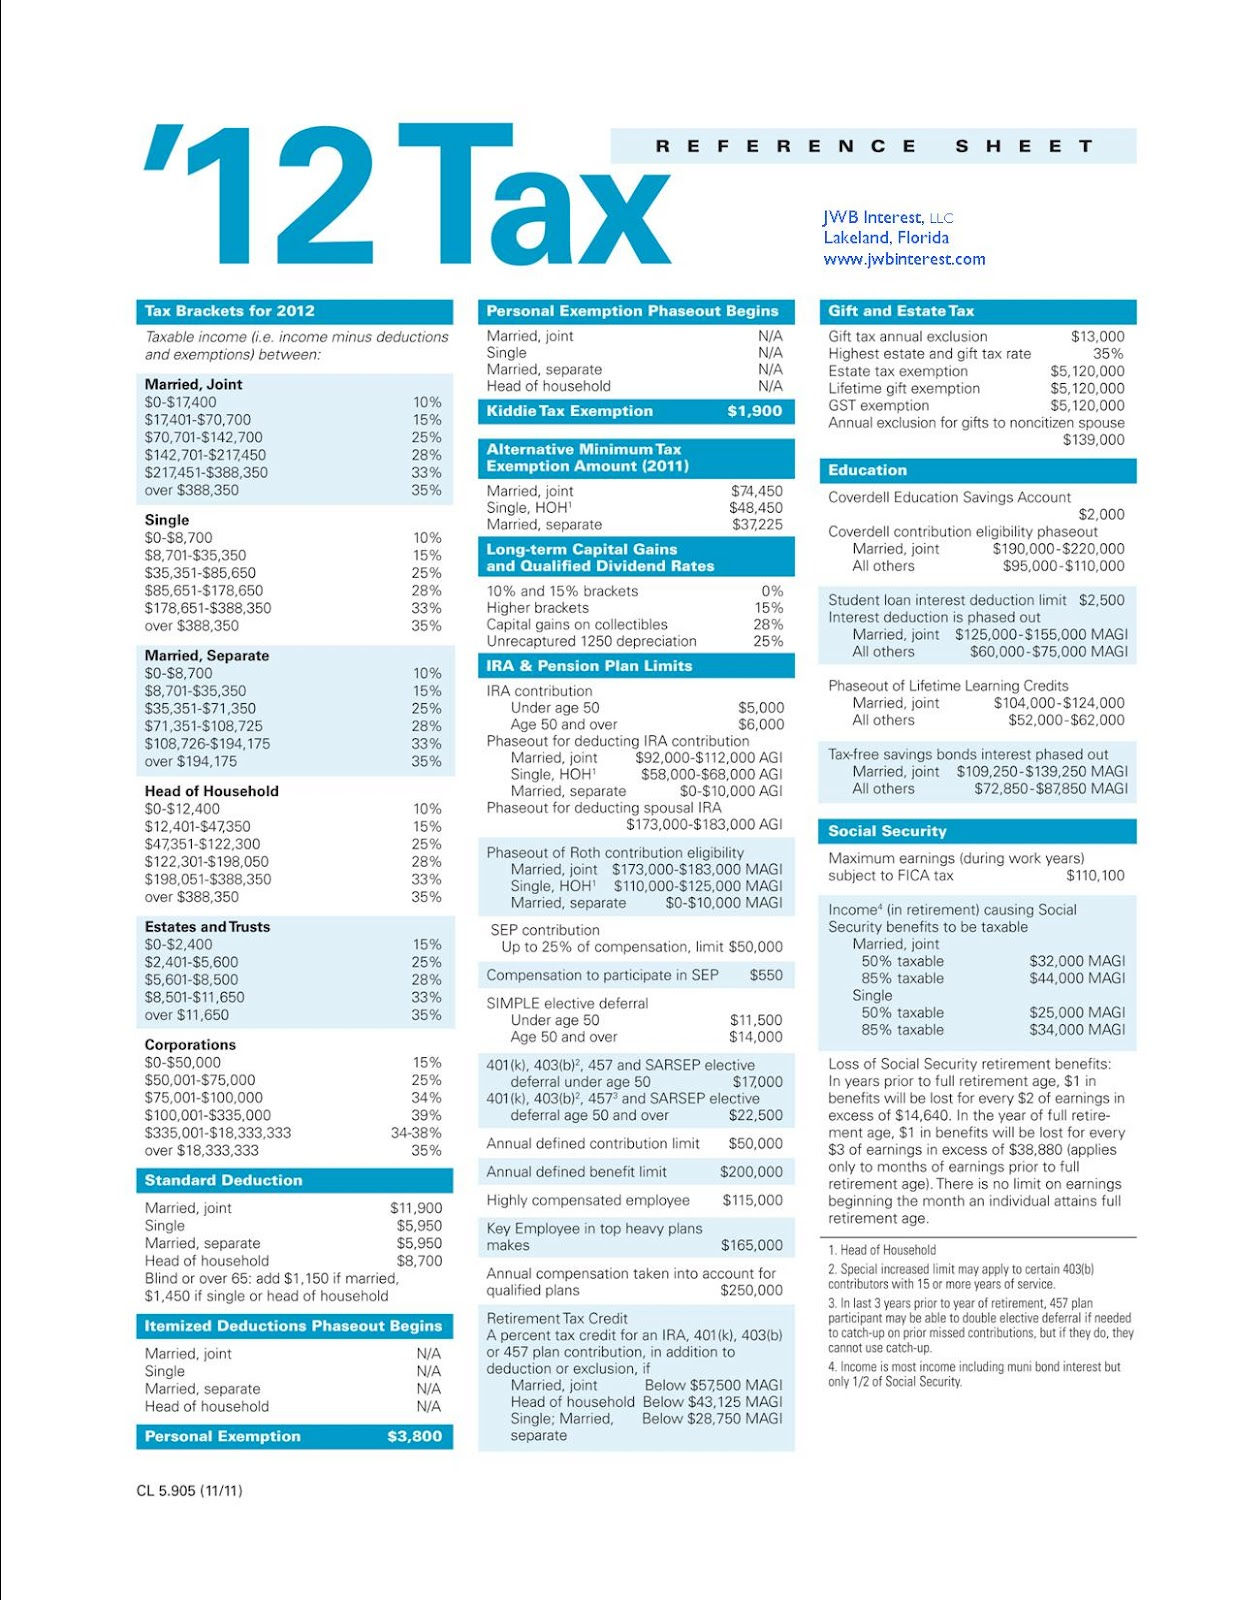 ... 2010 irs tax tables with 1040a federal income tax form for 2011 2012